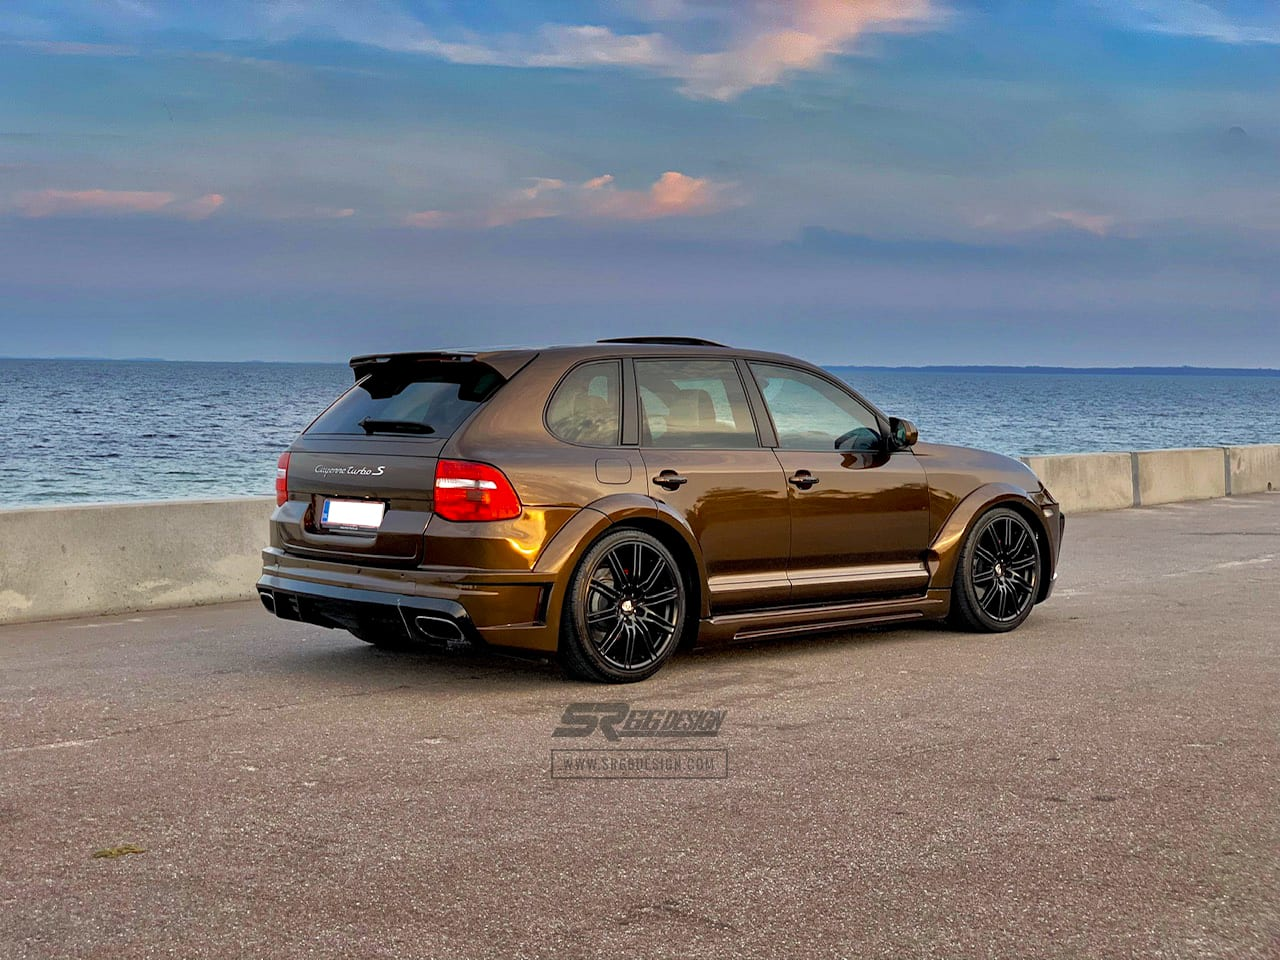 Porsche Cayenne 957 SR66.2 SR66 wide body kit